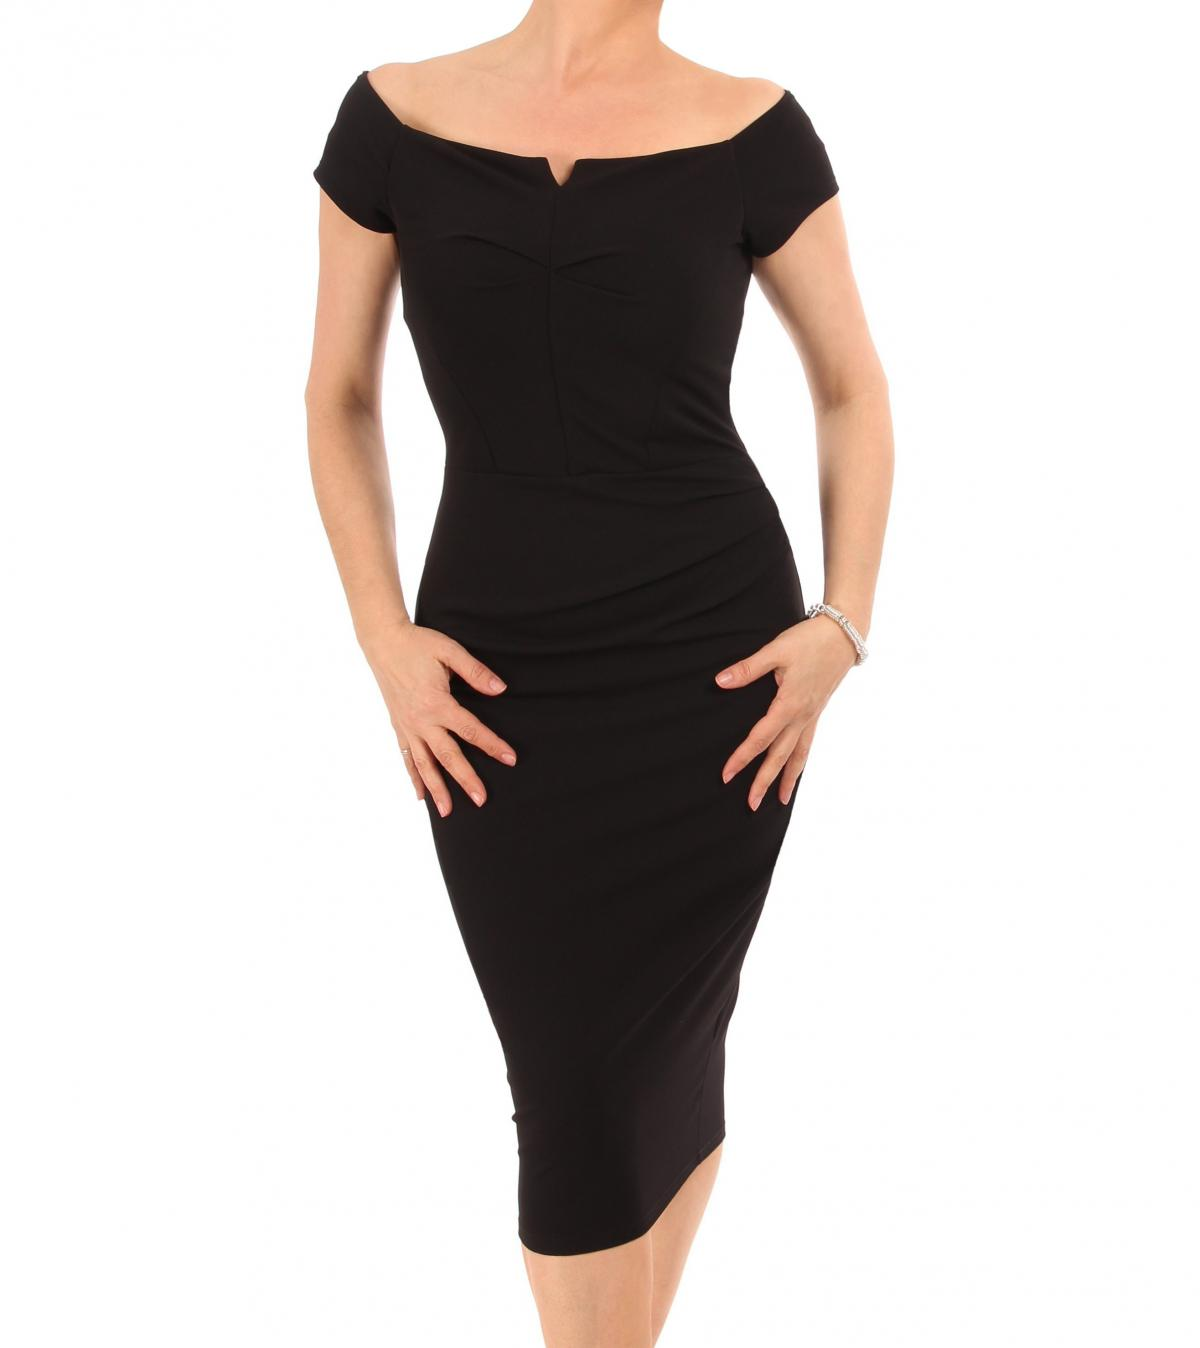 Black Bardot Style Notch Dress